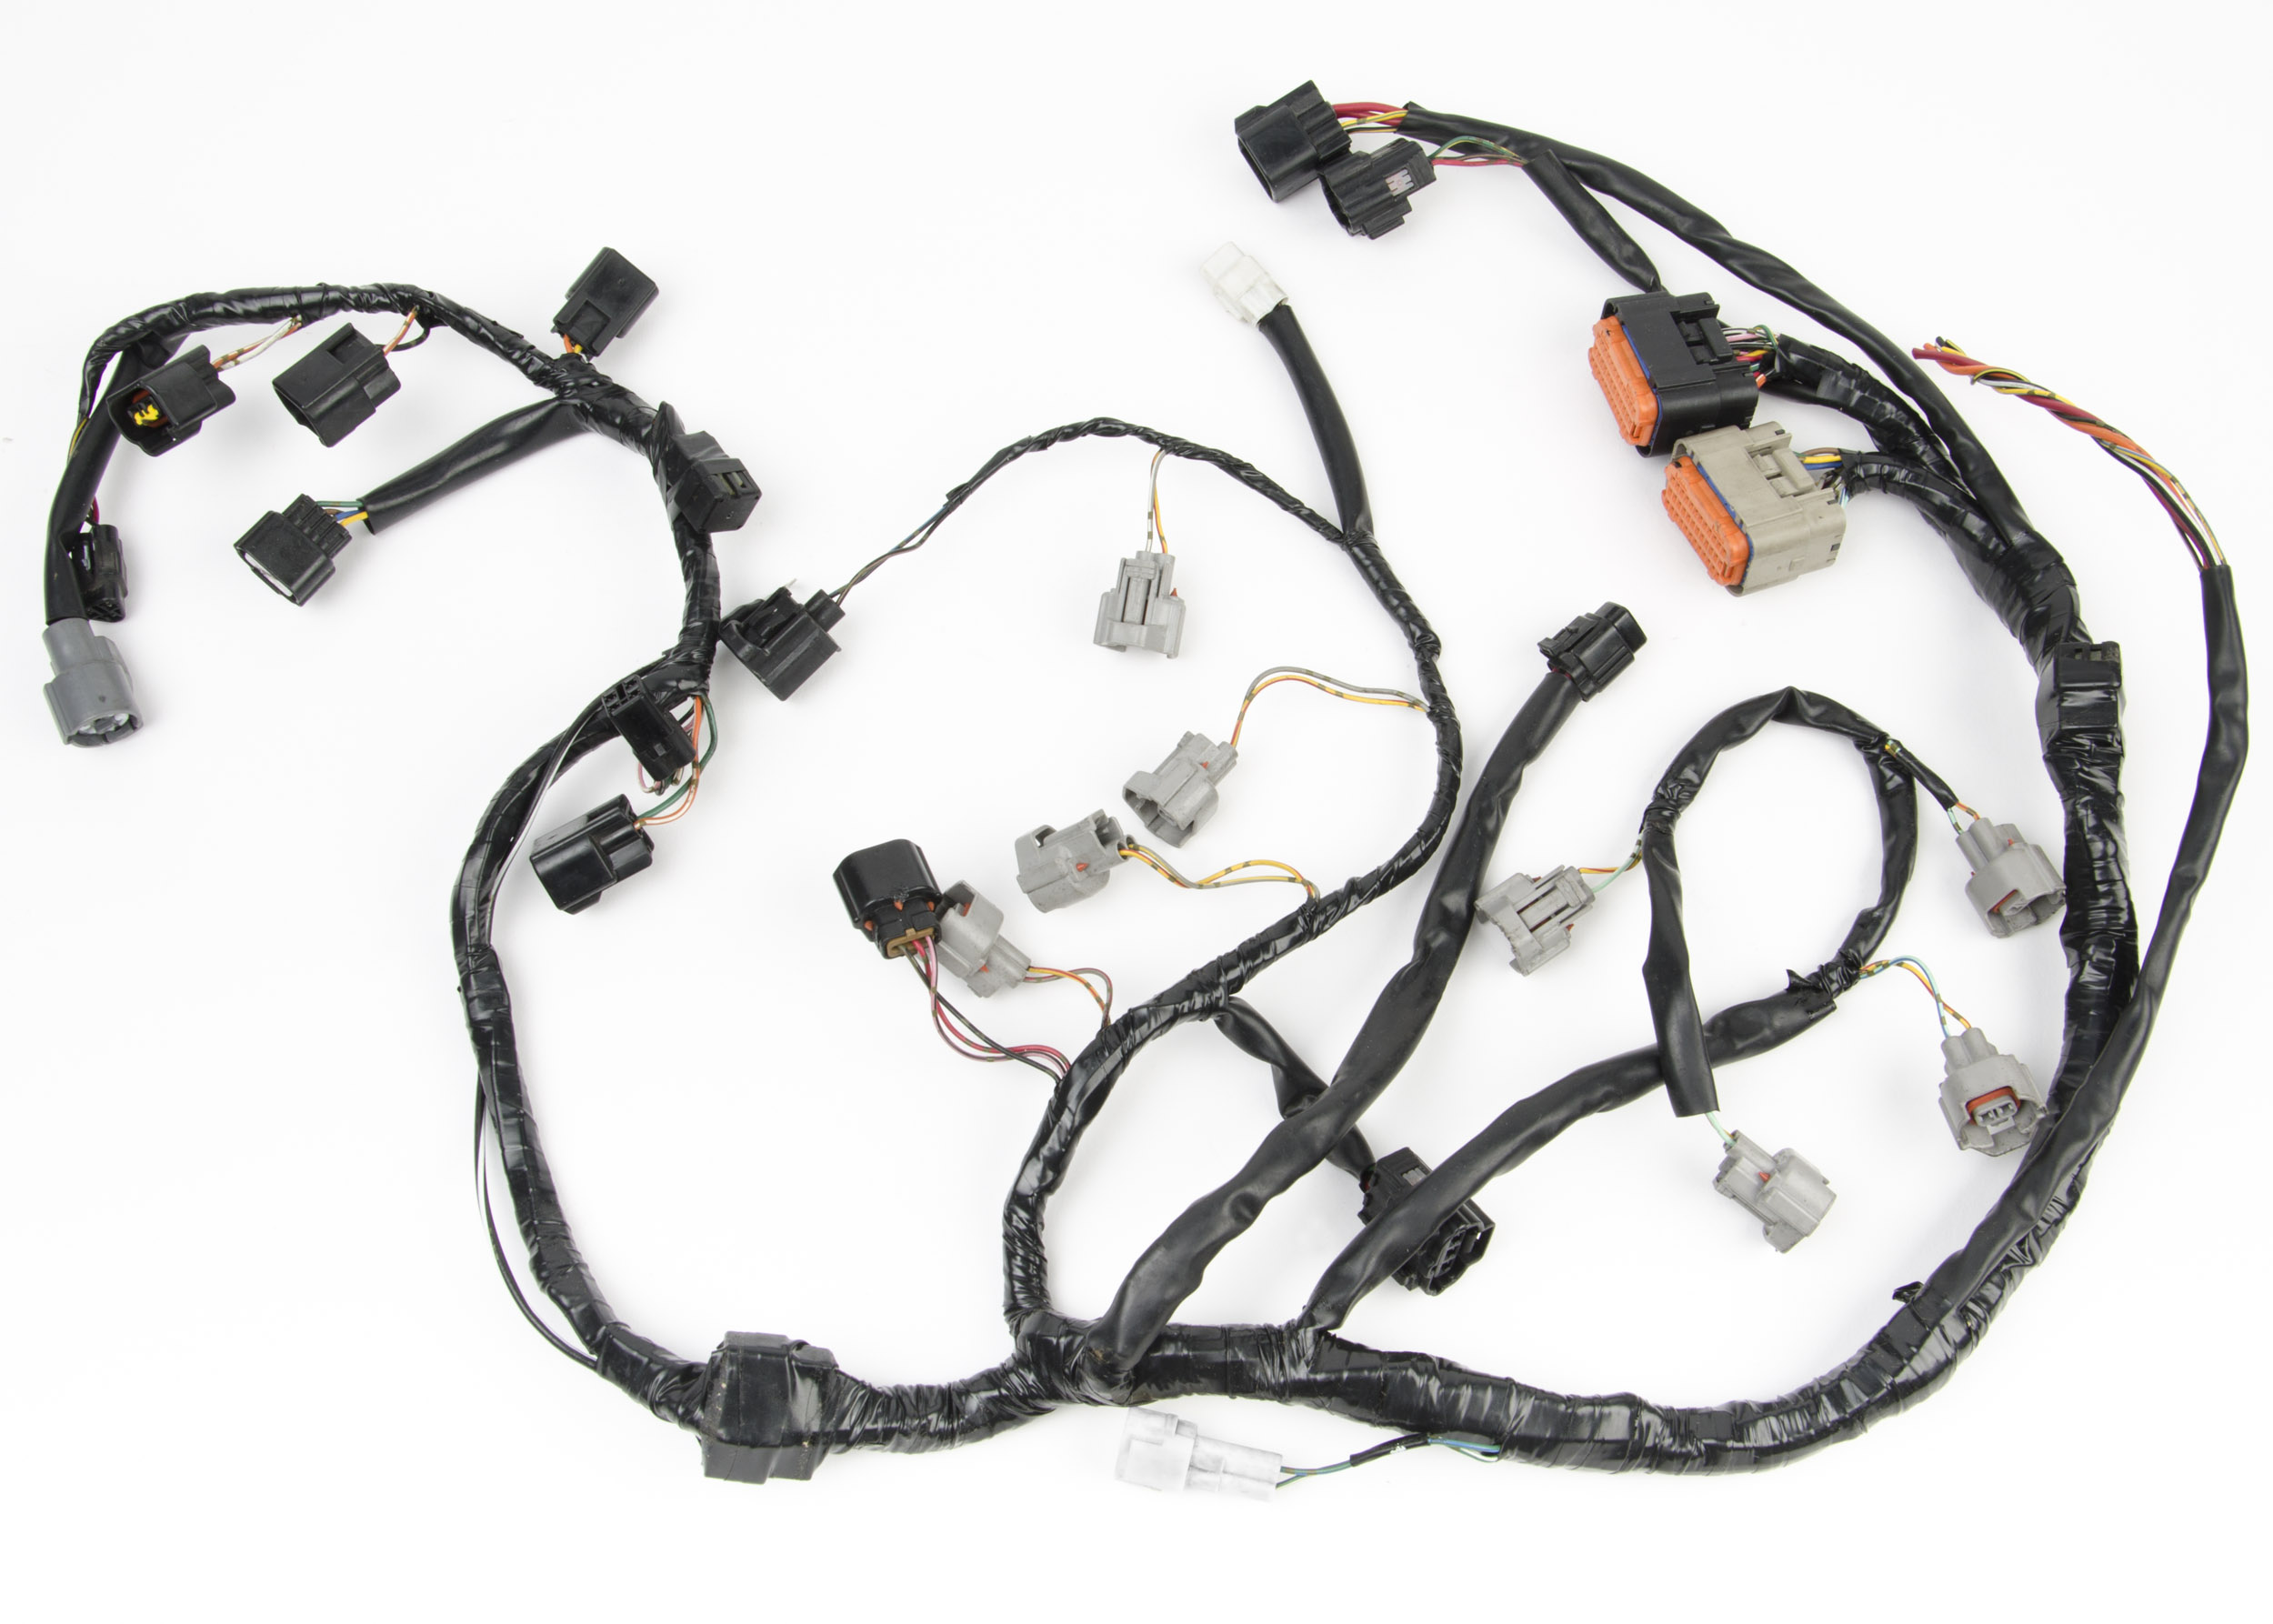 600 449 online store hyper racing 2004 Yamaha R6 Wiring-Diagram at edmiracle.co